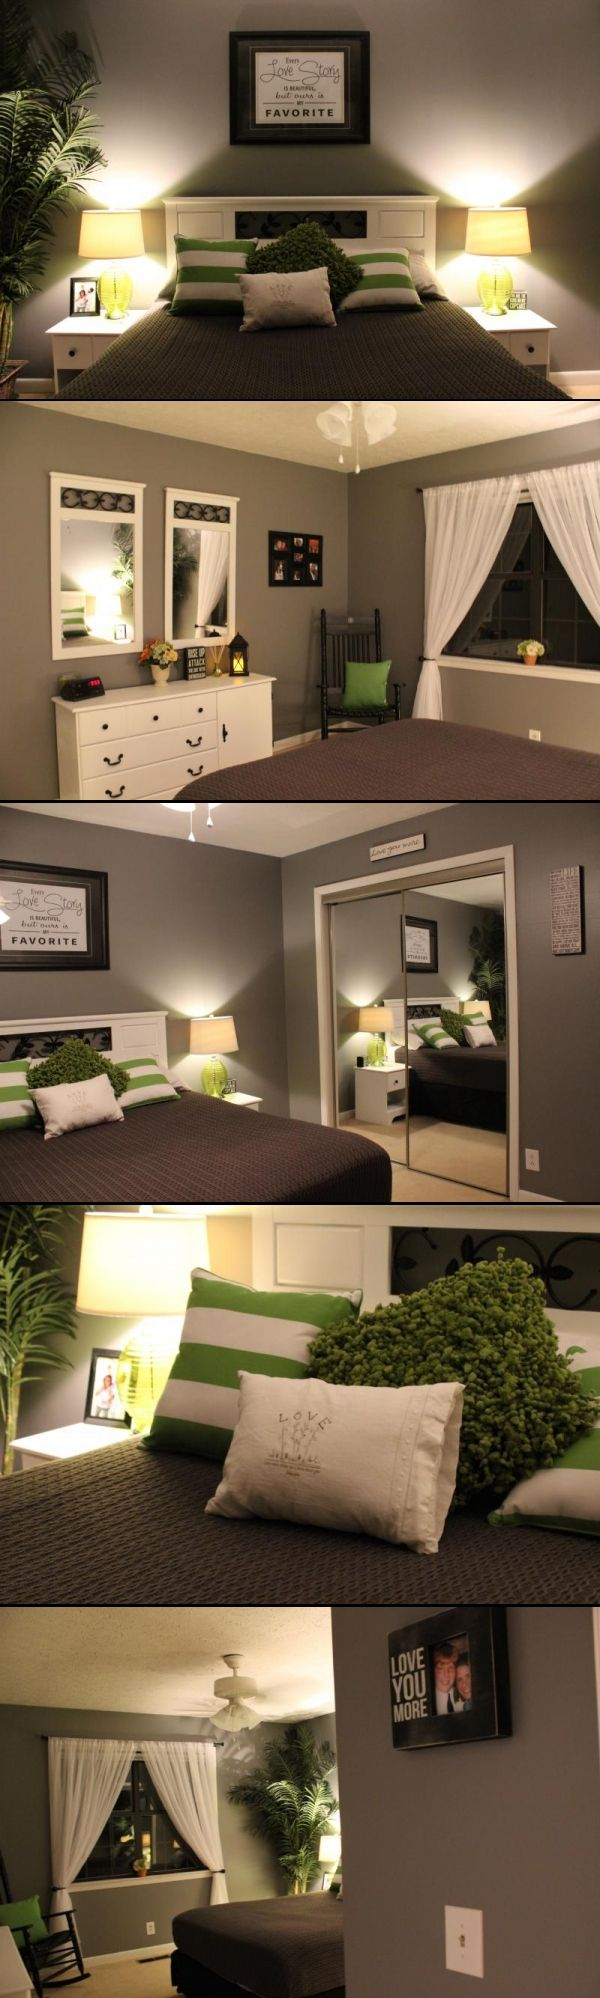 Gray And Green Bedroom I Like The Color Scheme